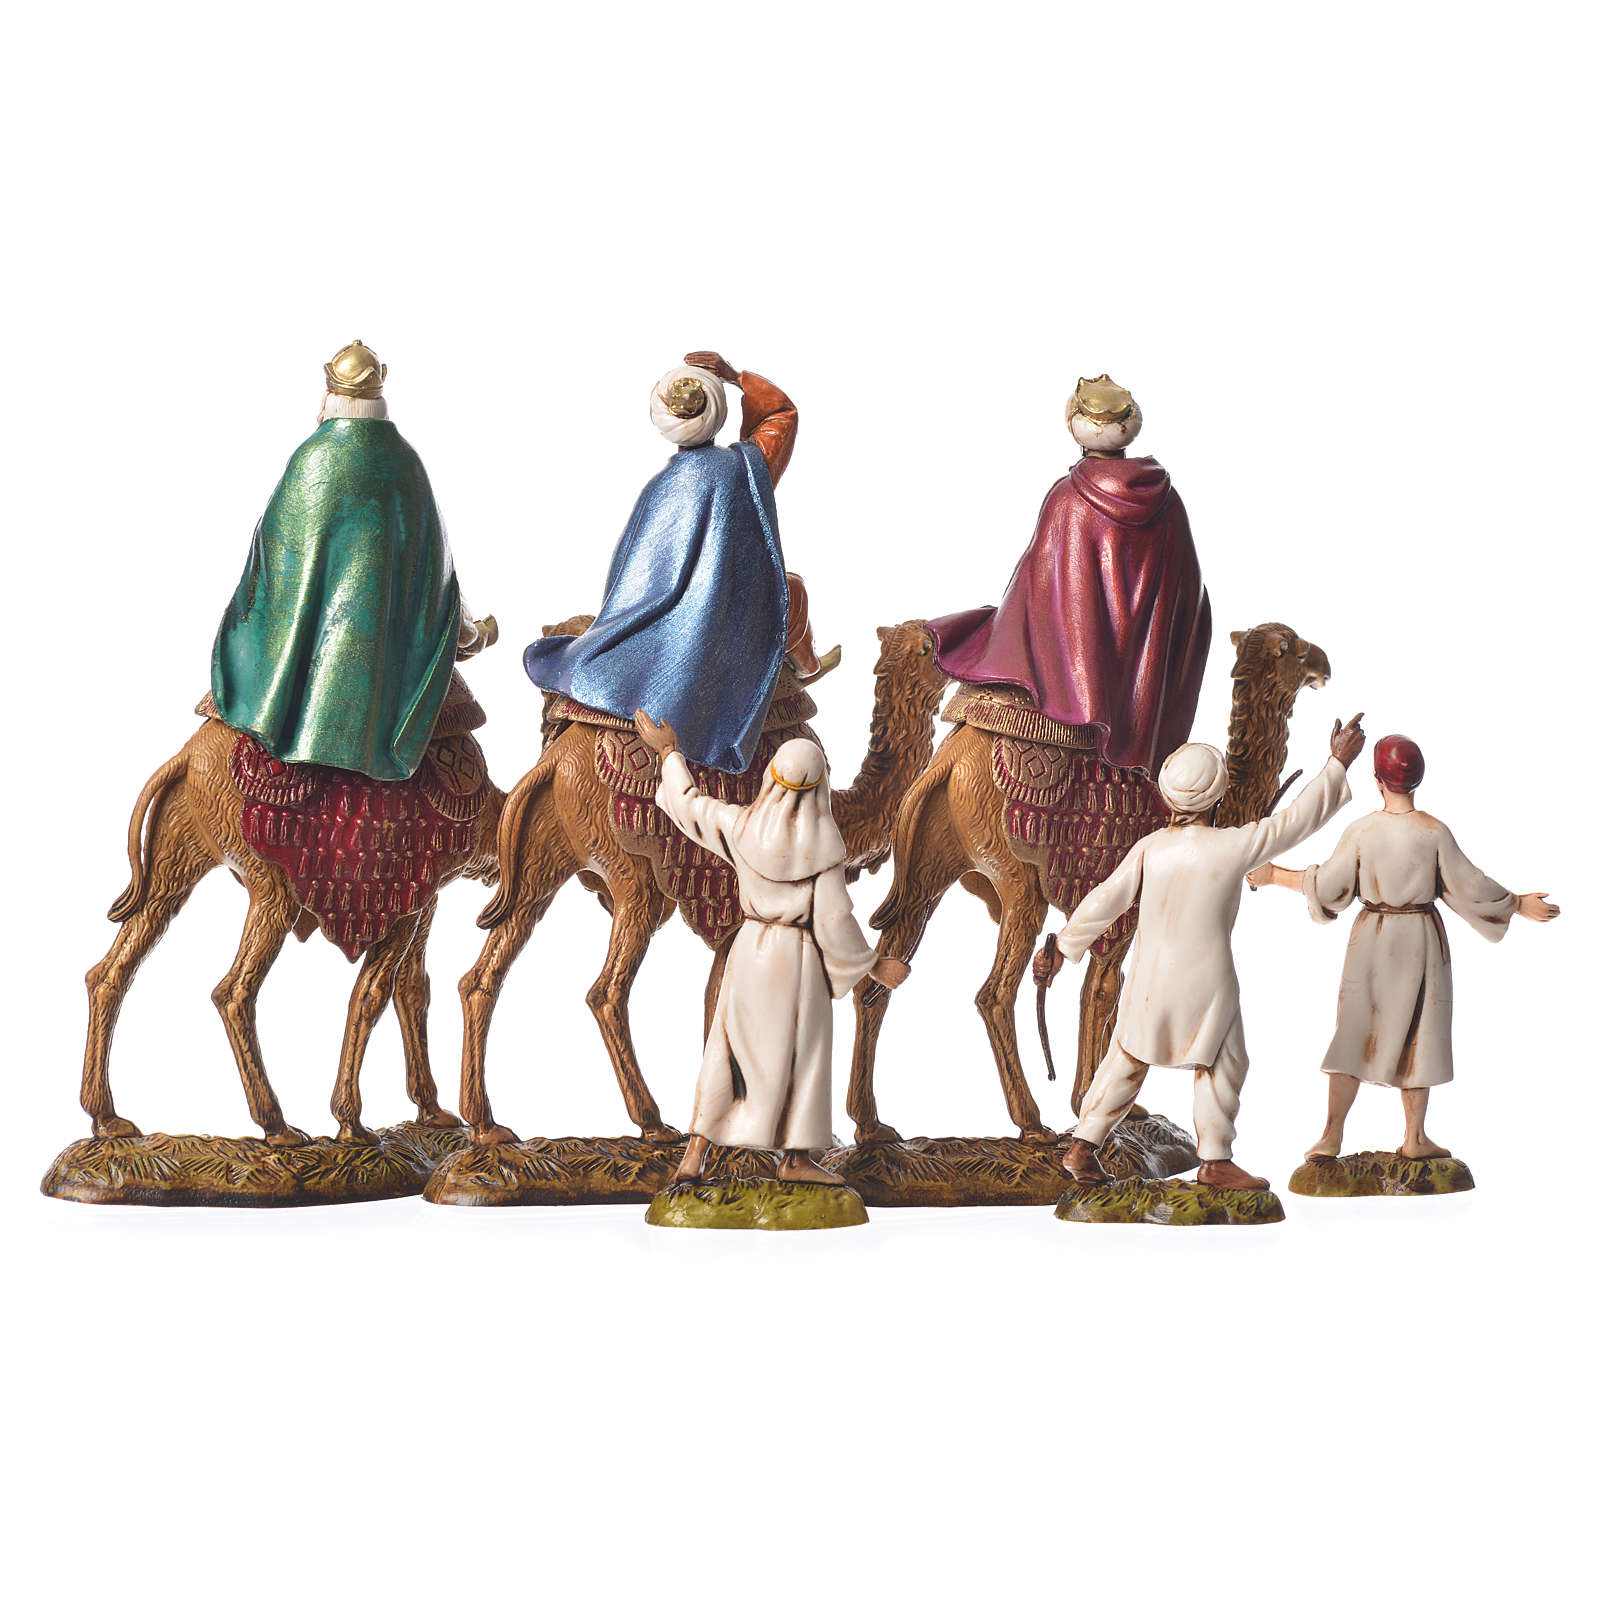 Wise men and camels nativity figurines 6 pieces, 10cm Moranduzzo 4